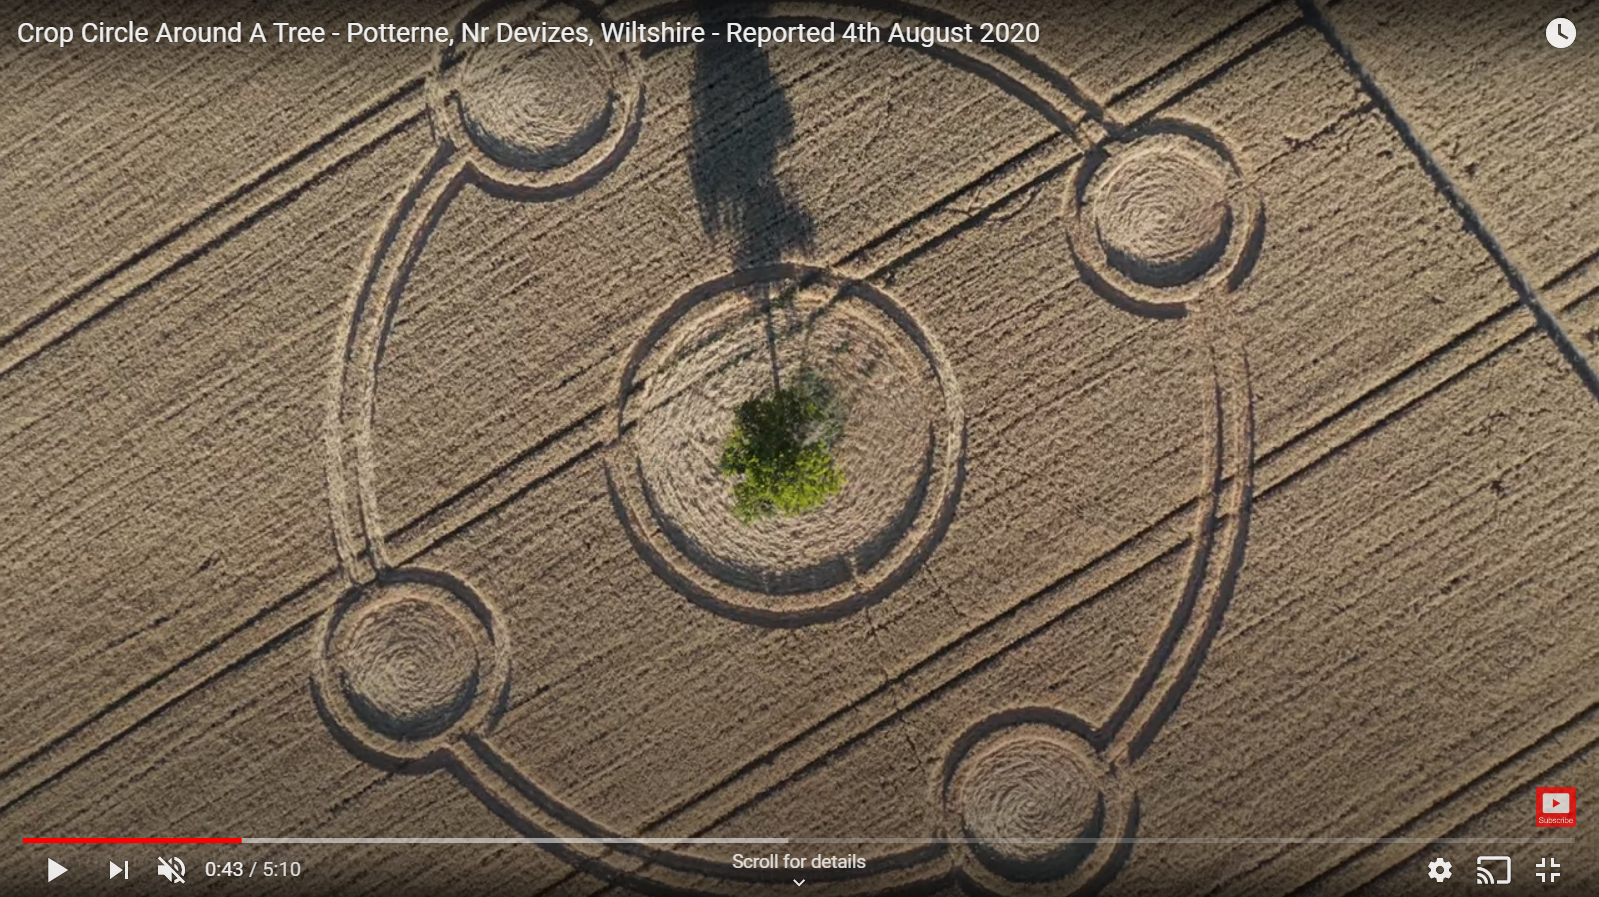 Potterne crop circle around tree 2